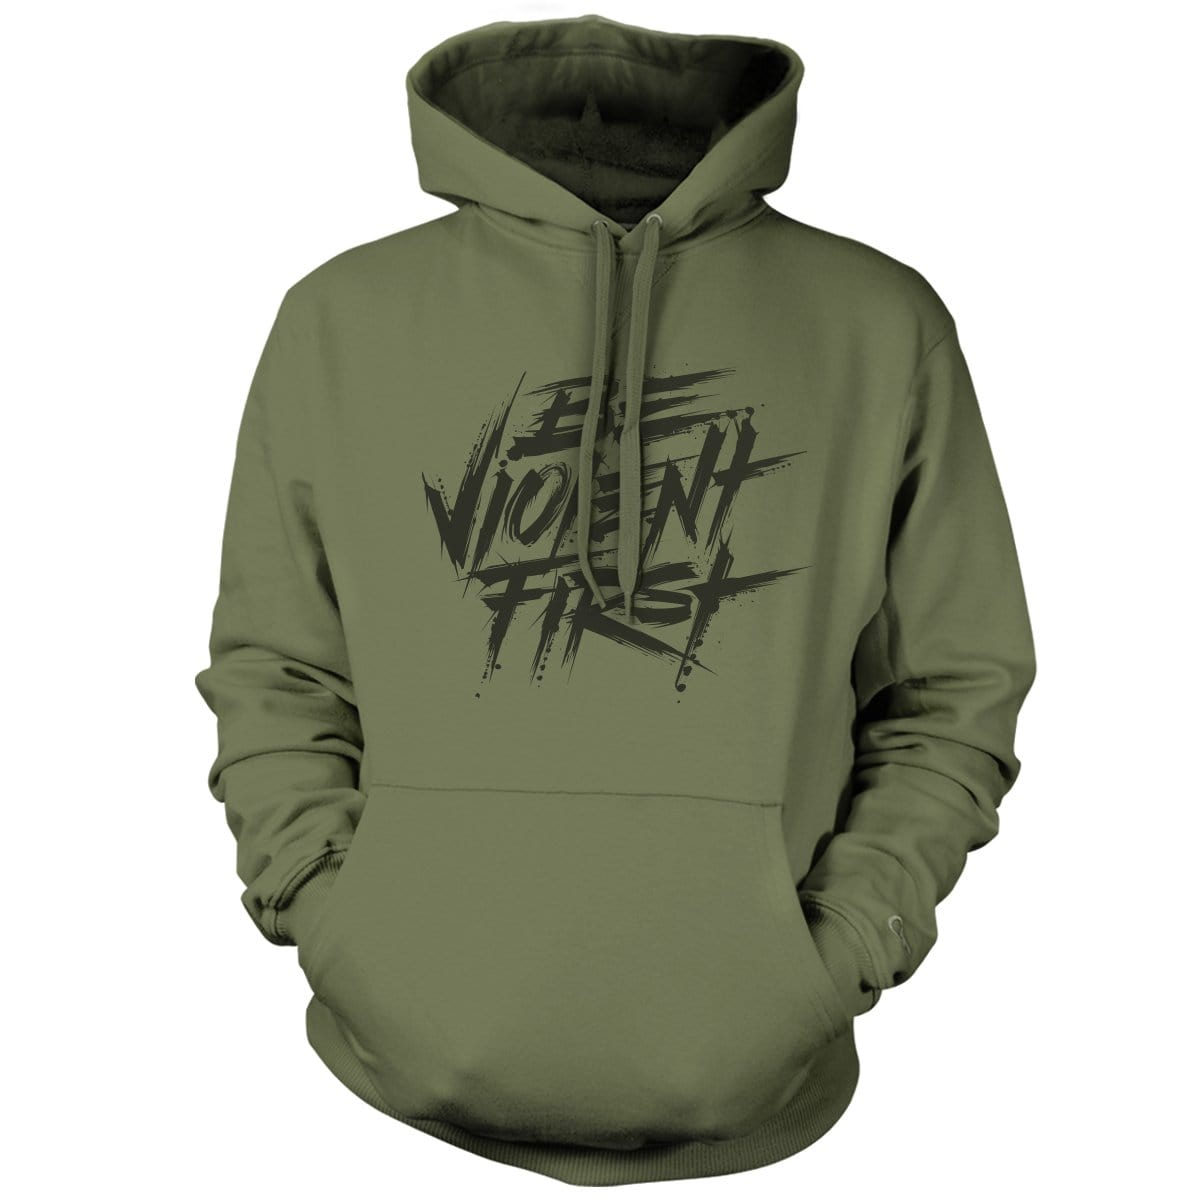 Be Violent First Hoodie - Pipe Hitters Union